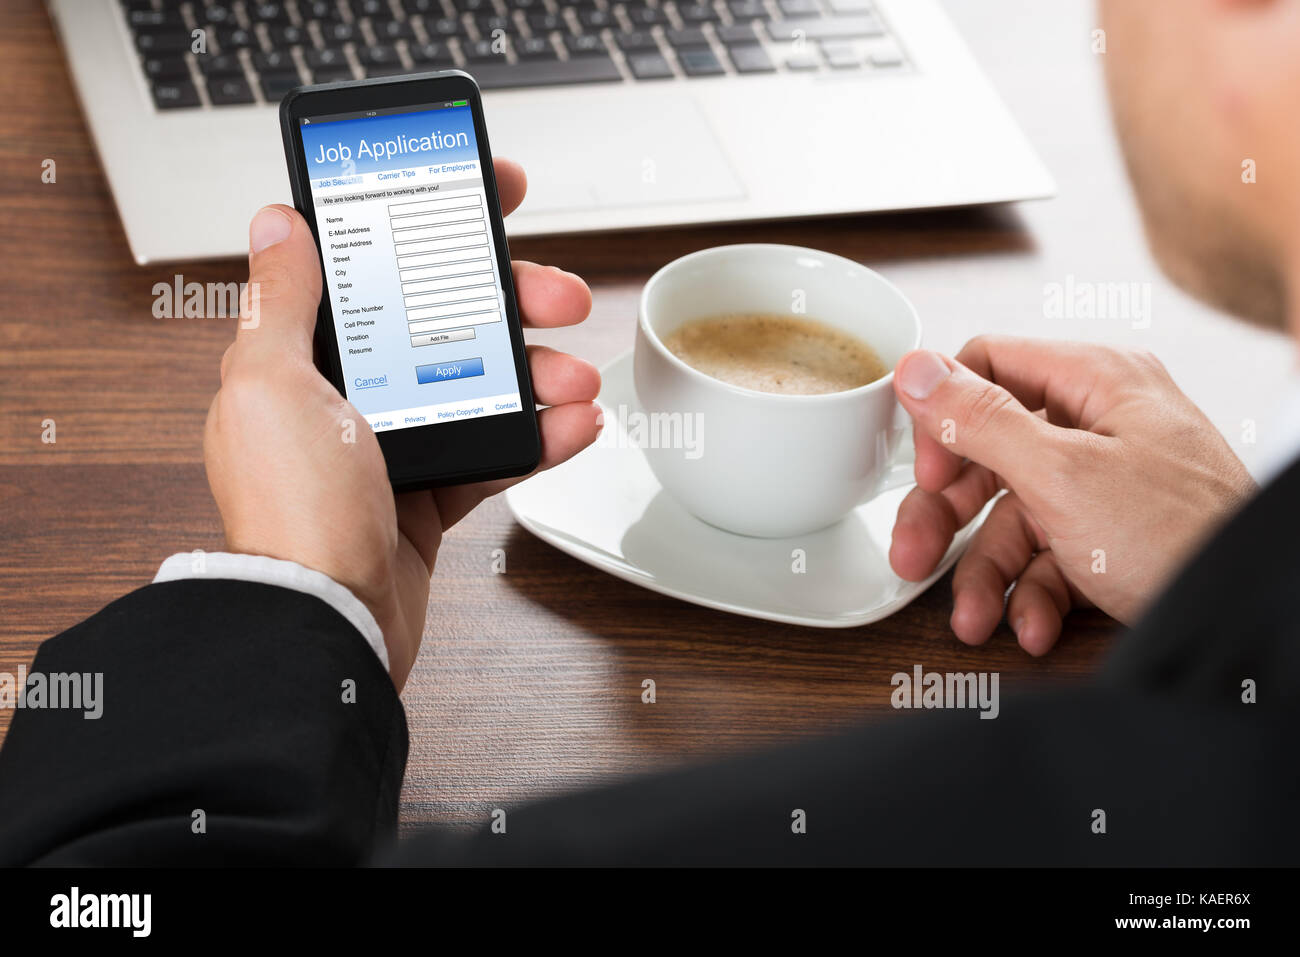 Close-up Of A Businessman Looking At Job Application Form On Cellphone While Having Coffee Stock Photo